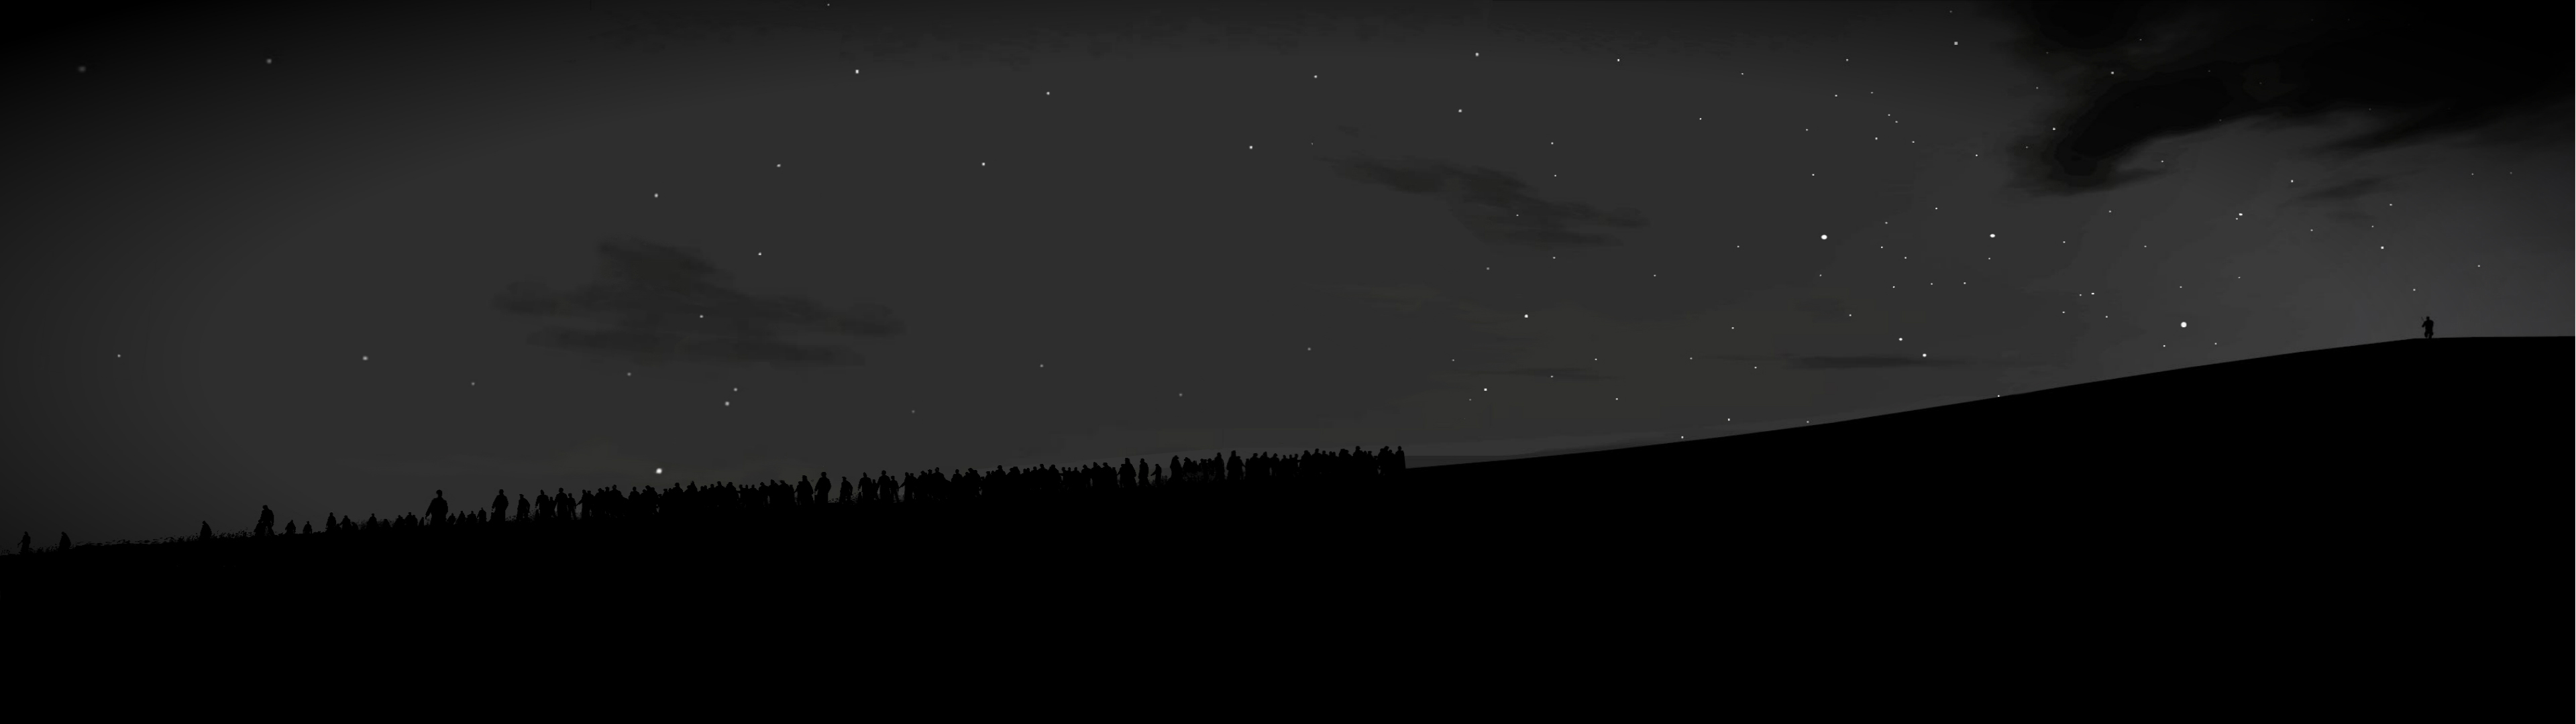 think of the DayZ dual monitor wallpaper I put together today dayz 3840x1080